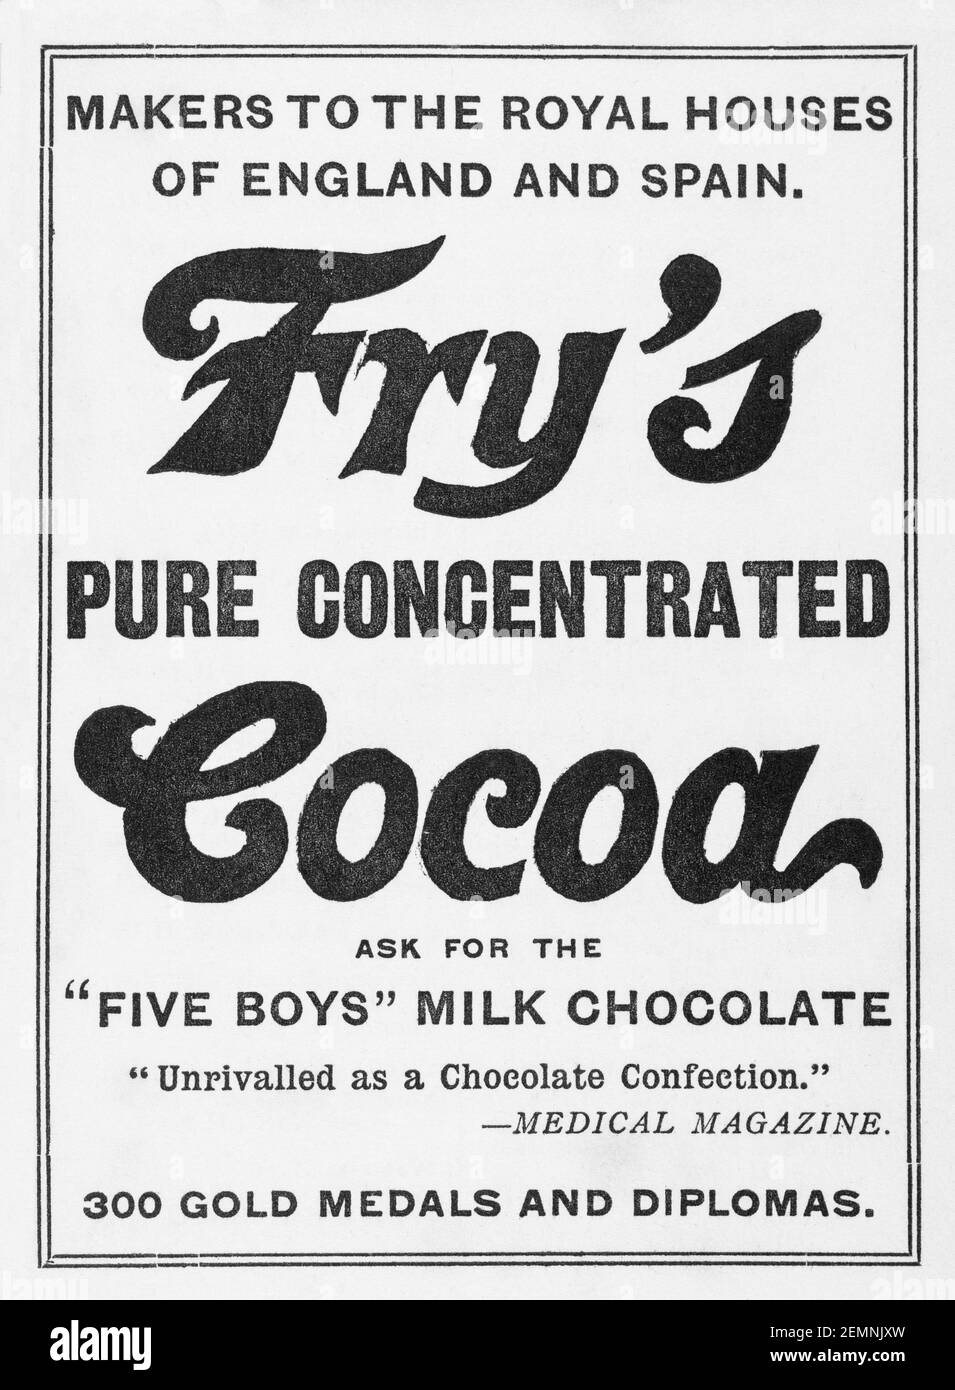 Fry's Chocolate Advert High Resolution Stock Photography and Images - Alamy